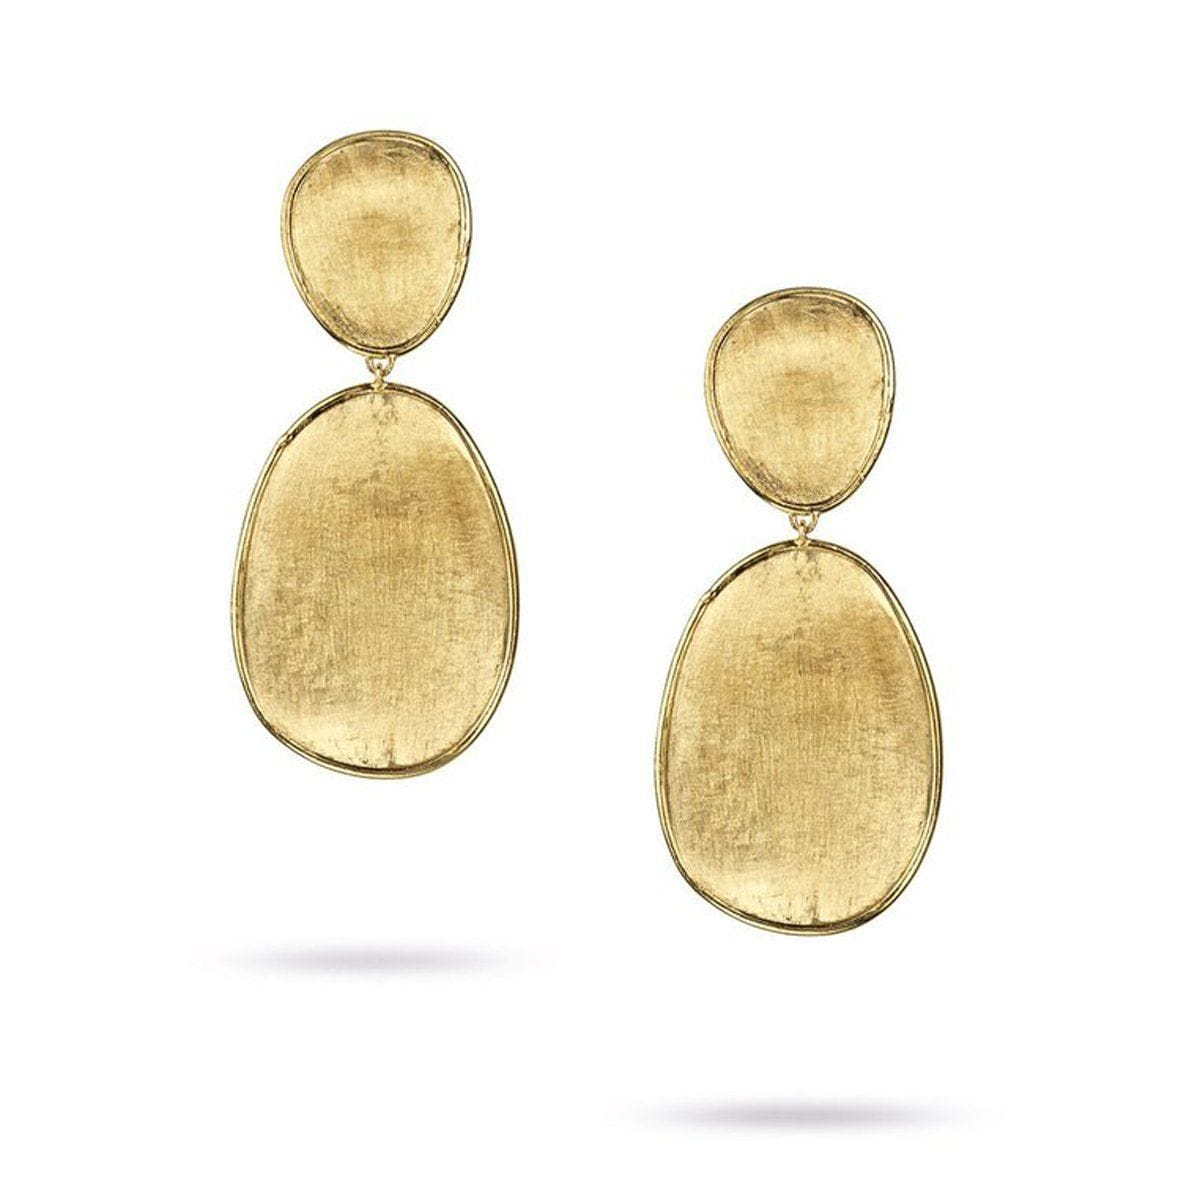 Lunaria Small Double Drop Earrings - OB1345 Y-Marco Bicego-Renee Taylor Gallery